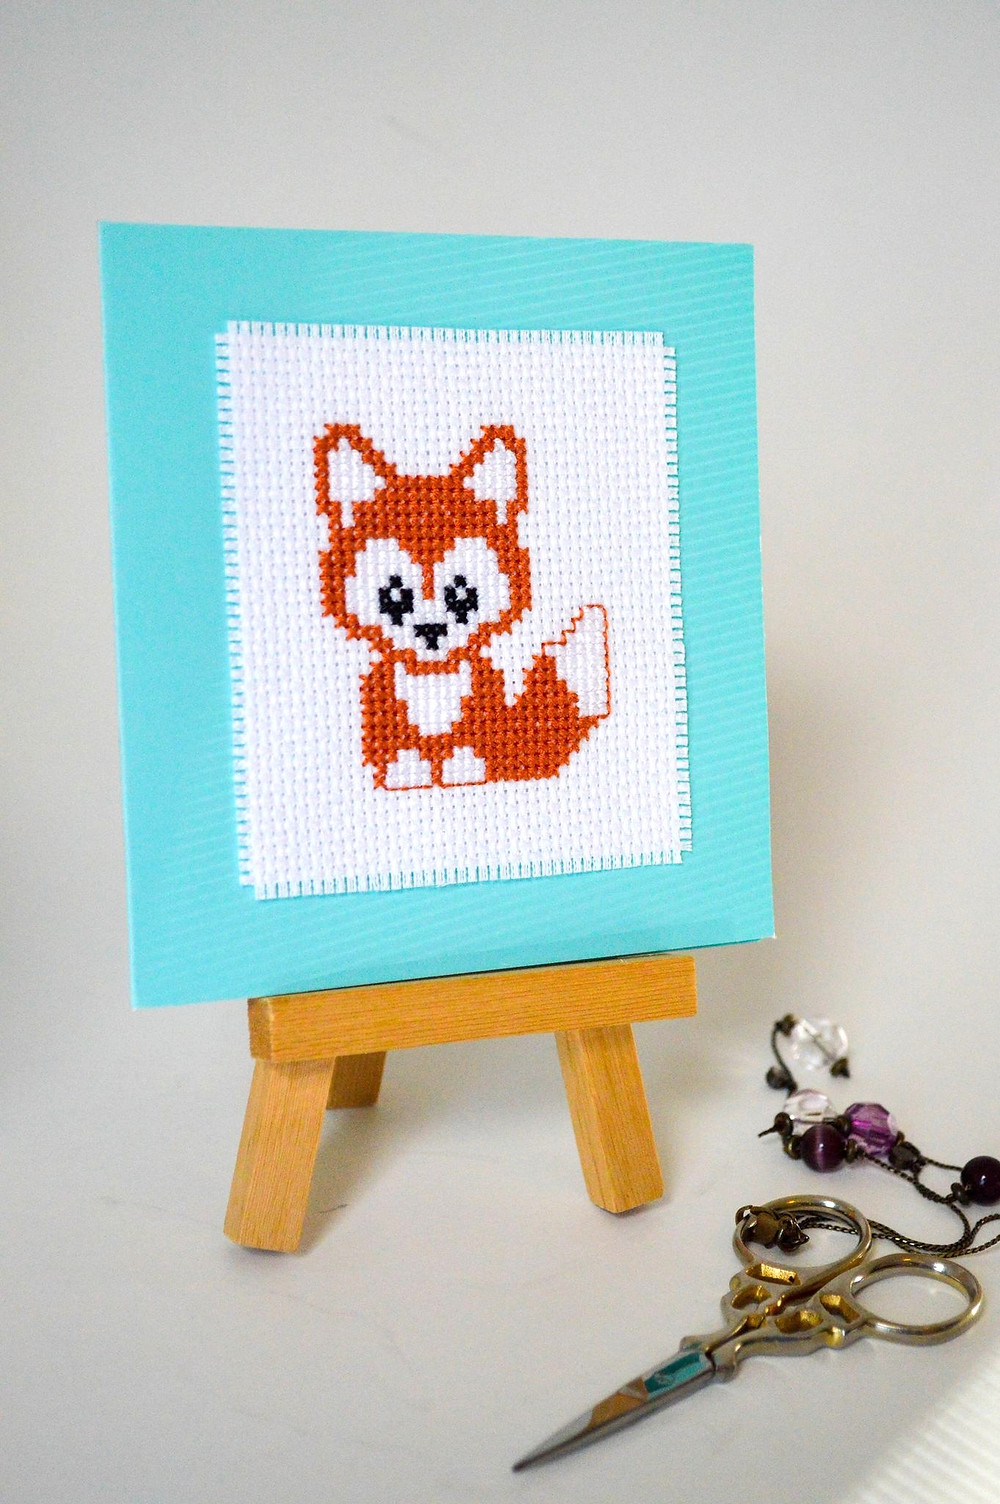 An orange fox is cross stitched onto a blue card.